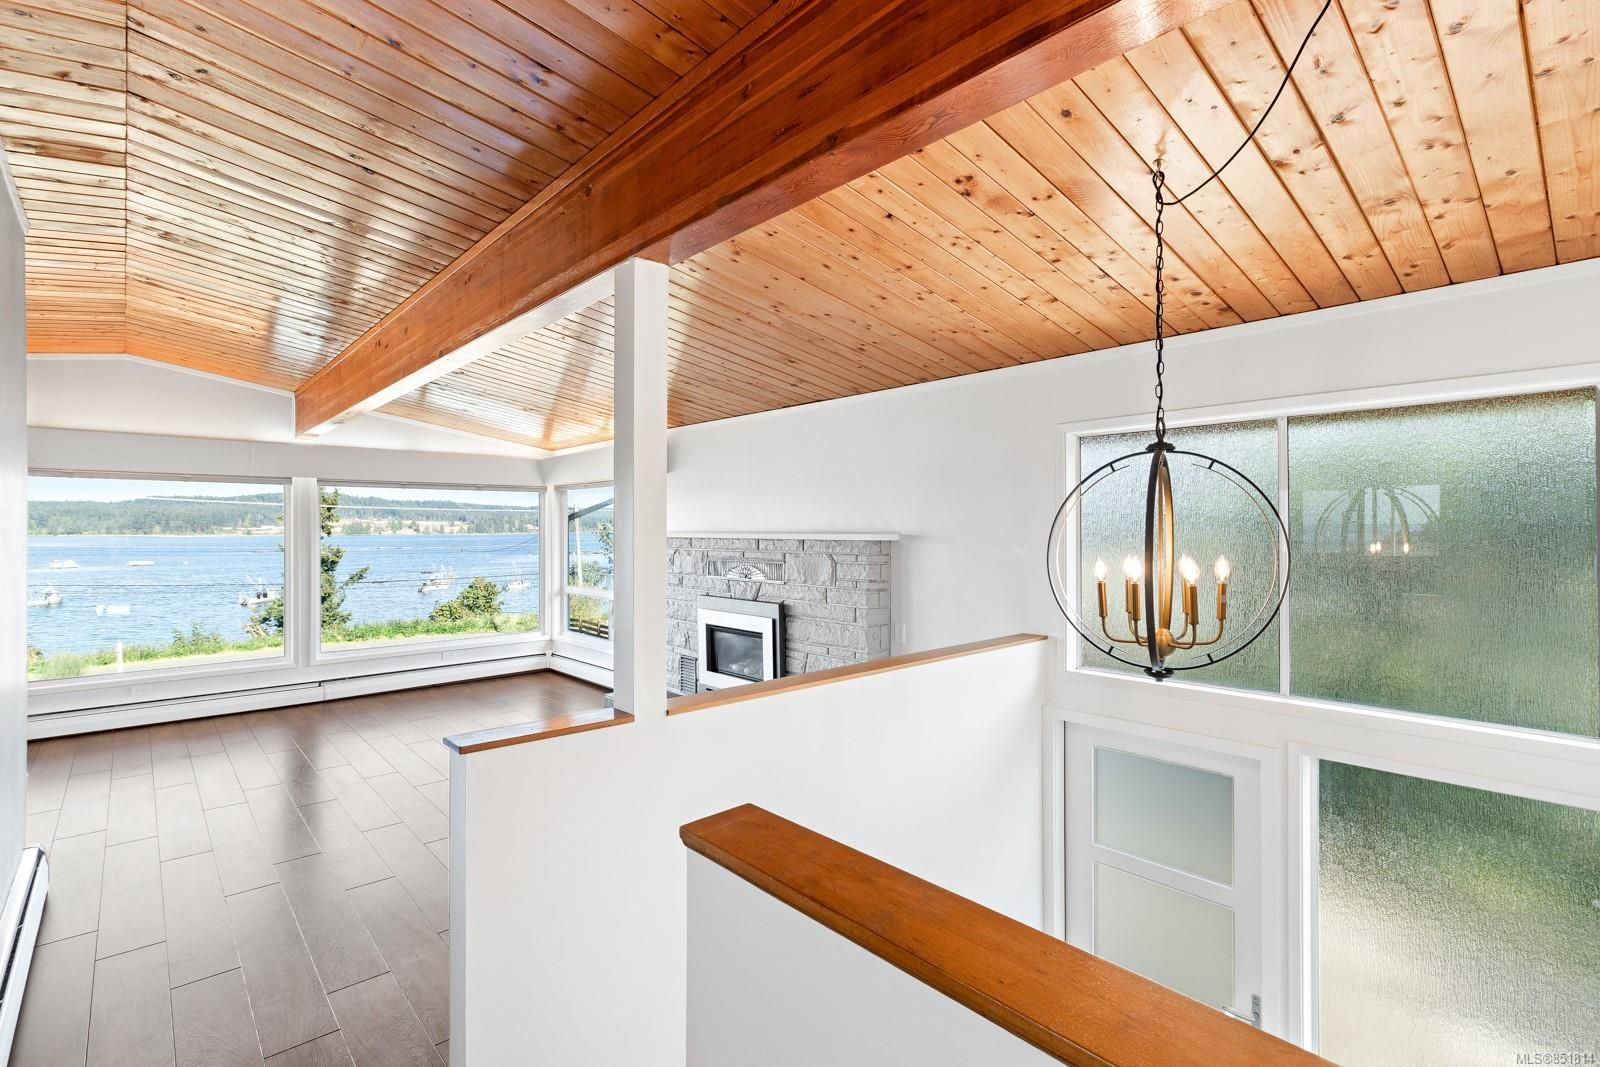 Photo 10: Photos: 191 Muschamp Rd in : CV Union Bay/Fanny Bay House for sale (Comox Valley)  : MLS®# 851814